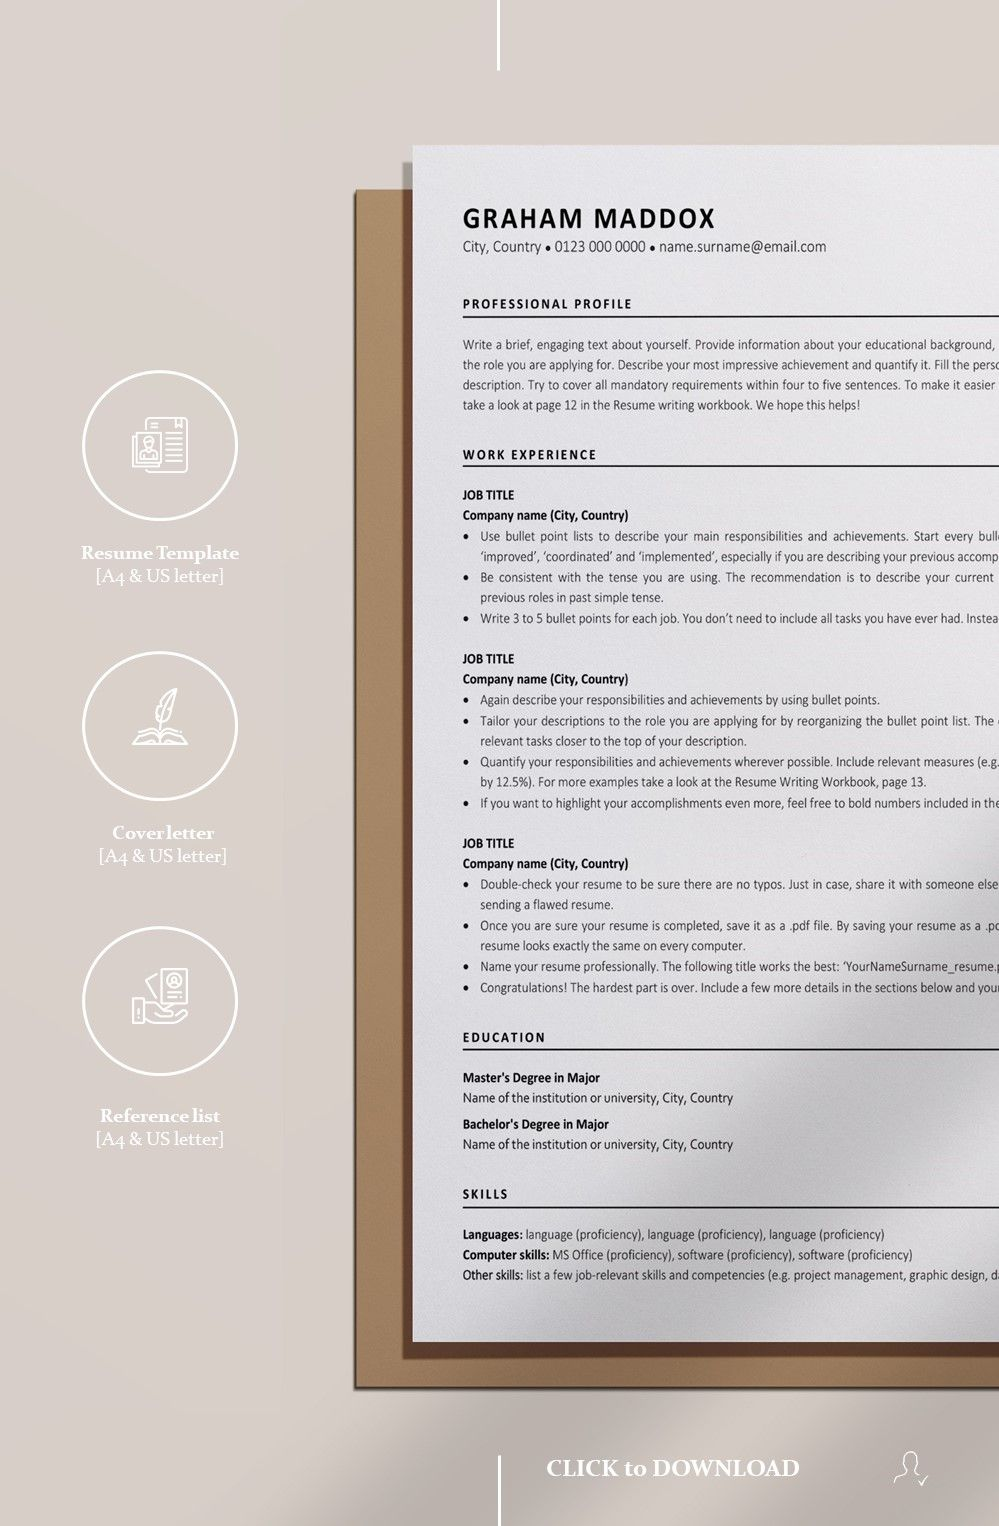 36+ What is ats resume template Resume Examples